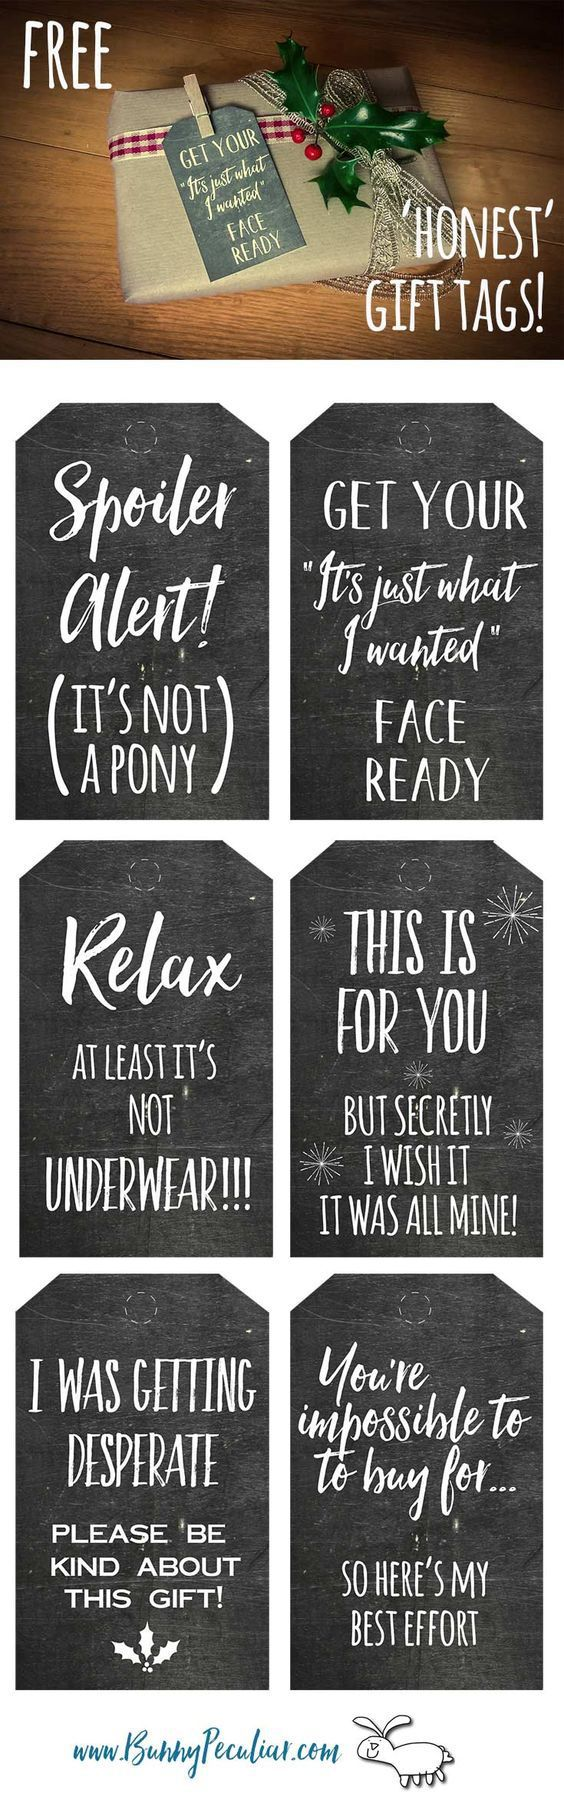 Best 25 free printable gift tags ideas on pinterest free honest and funny printable chalkboard gift tags so cute and hilarious free printables negle Image collections